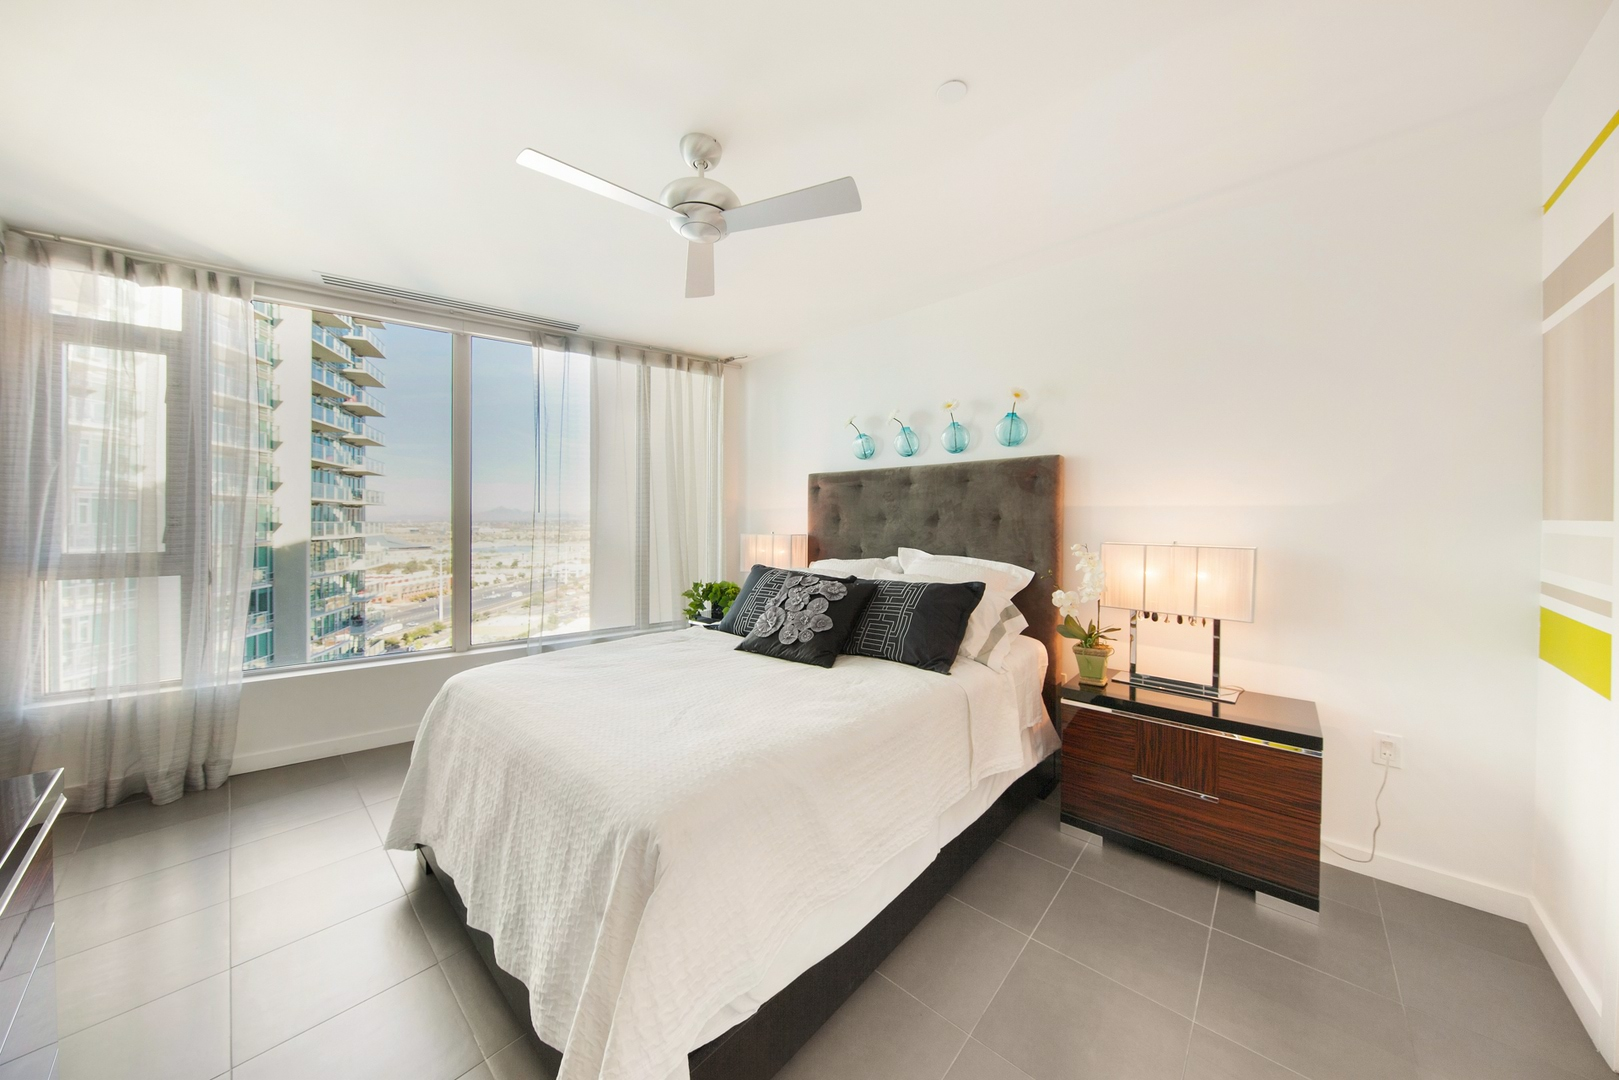 Apartments by ASU | West 6th Apartments Photo Gallery